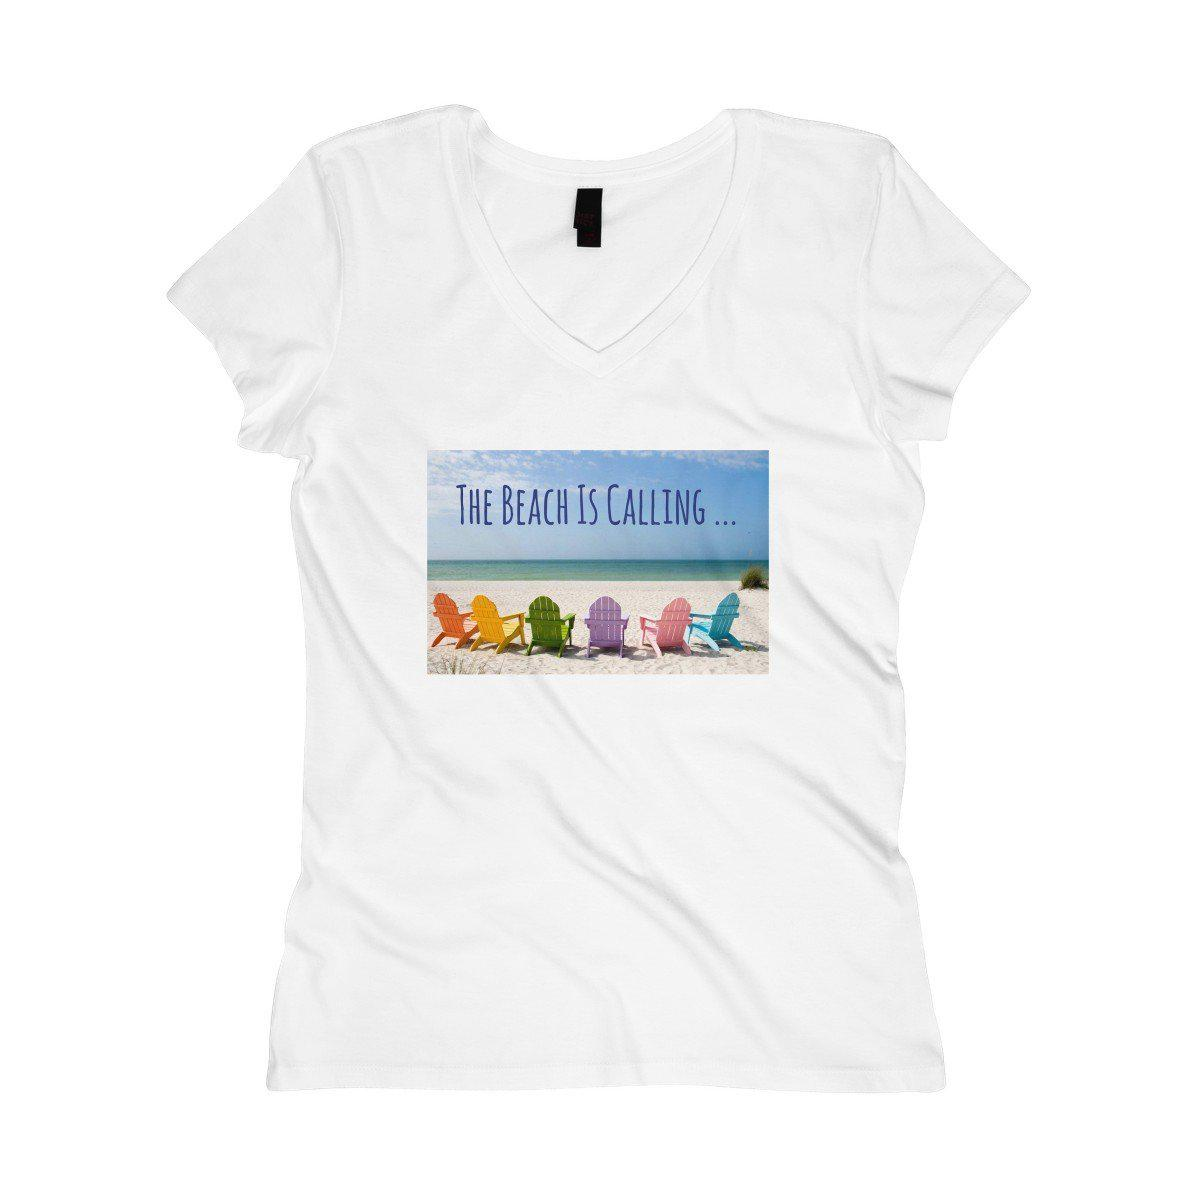 The Beach Is Calling V-Neck Tee-V-neck-White-XS-Coastal Passion